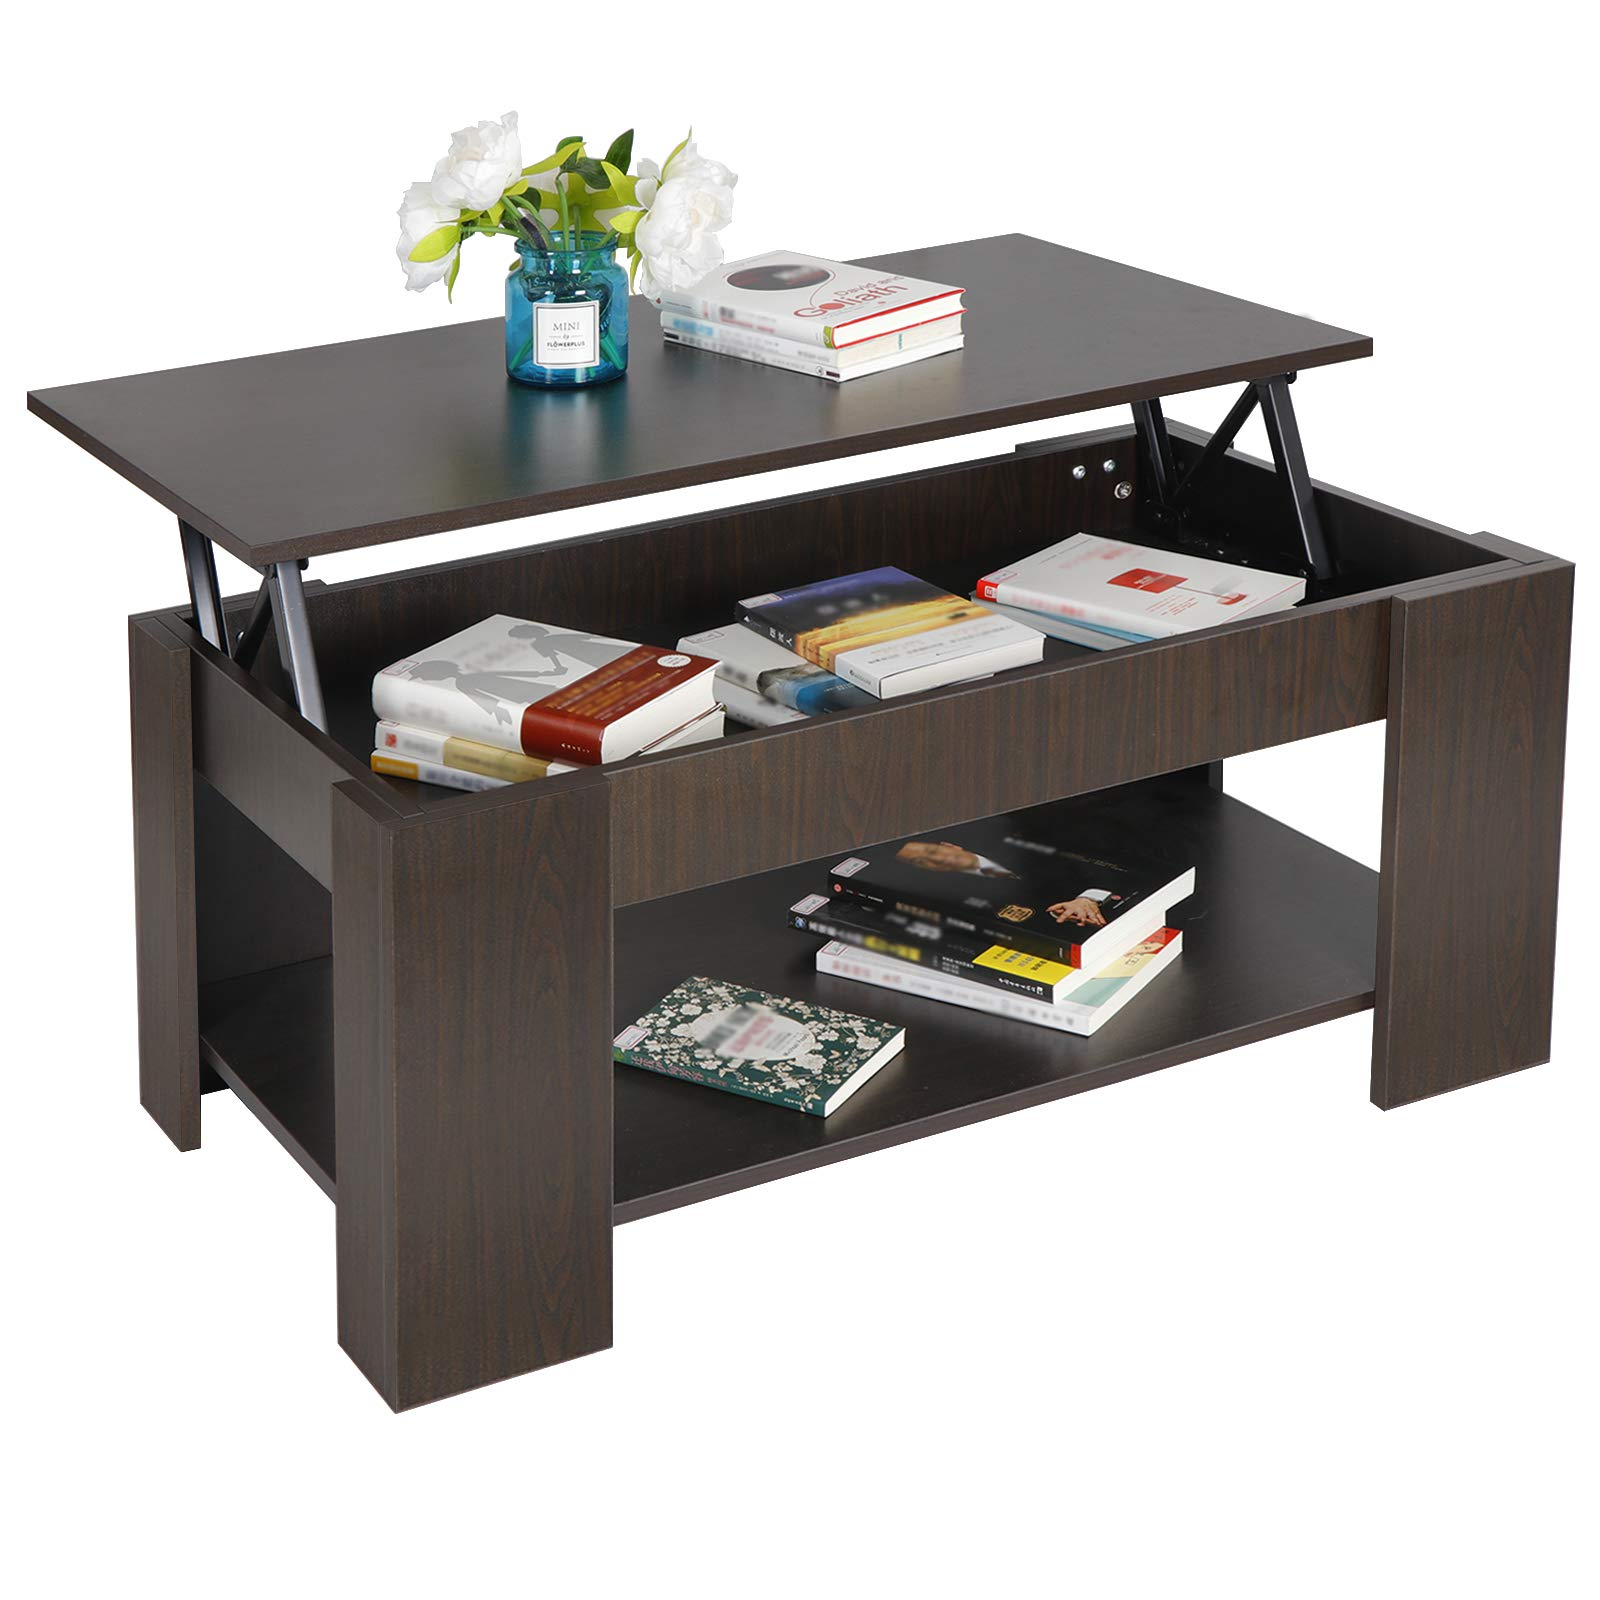 ZENY Coffee Table with Lift Top Hidden Compartment and Storage Shelves Modern Furniture for Home, Living Room, Décor by ZENY